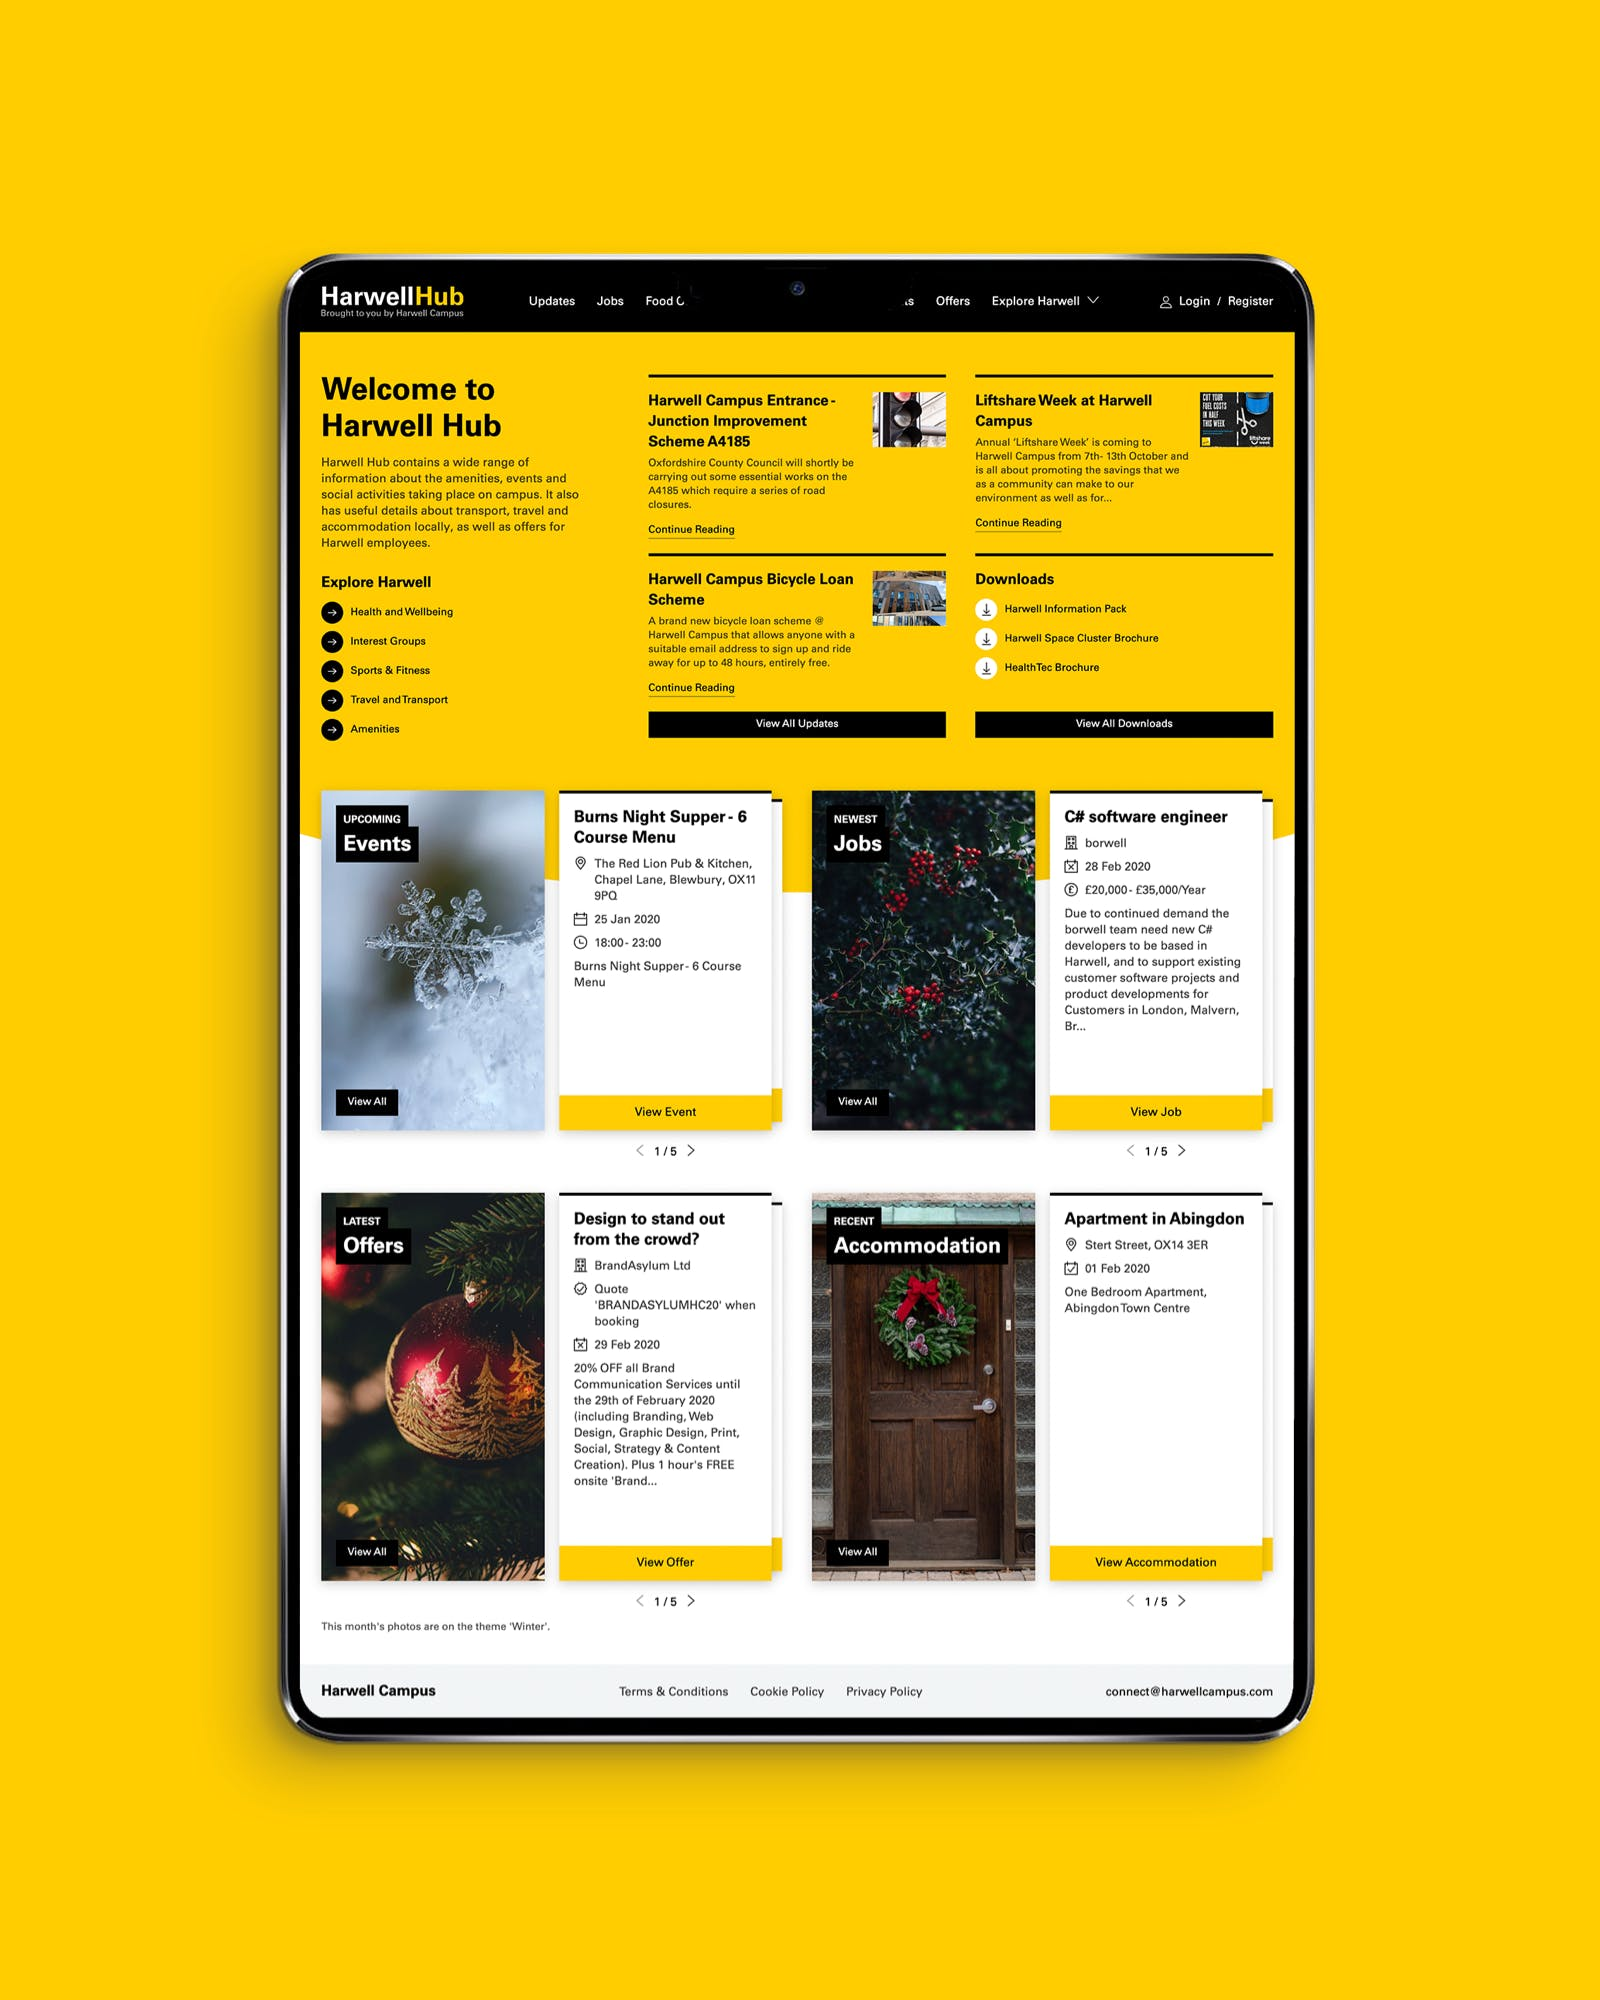 Harwell Hub homepage website design on tablet in portrait view